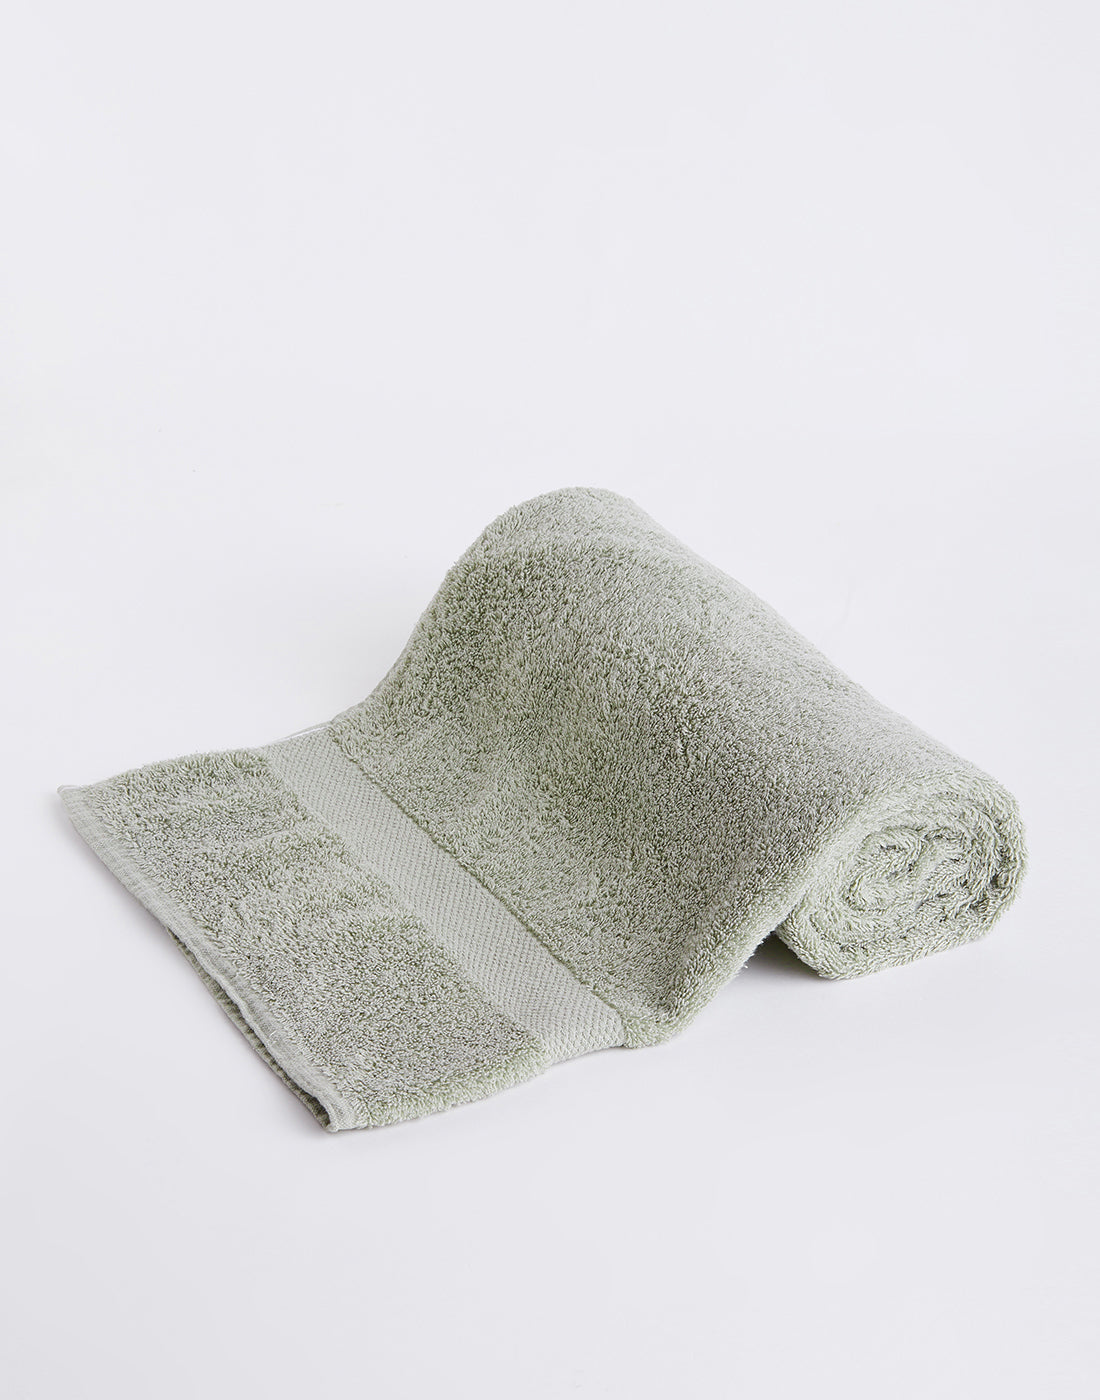 Octave Light Olive Green Cotton Bath Towels